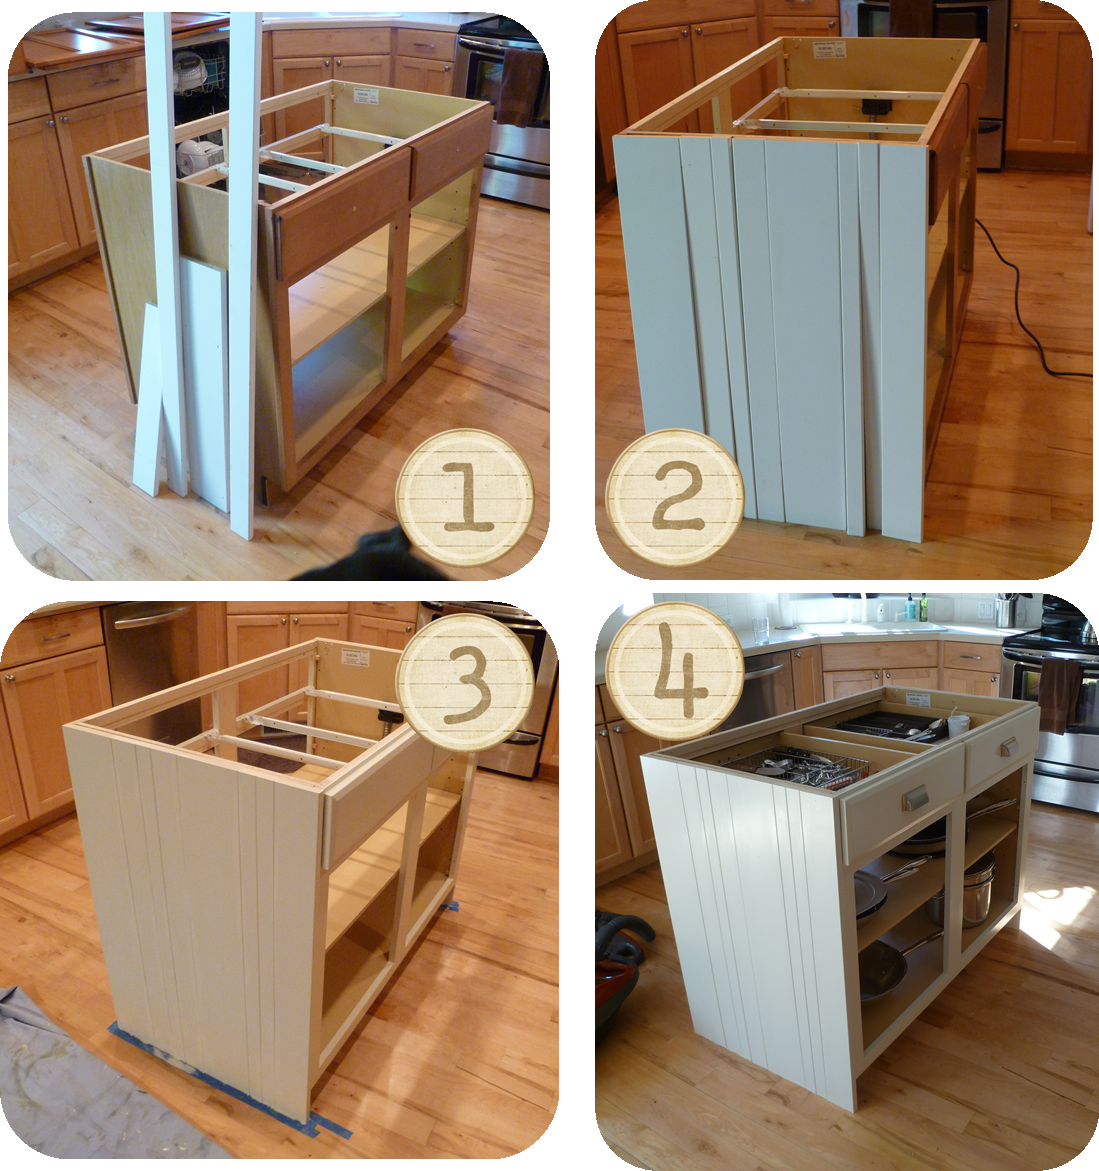 Diy kitchen island ideas honestly terracotta orange and green laminate was that ever - Kitchen island ideas ...